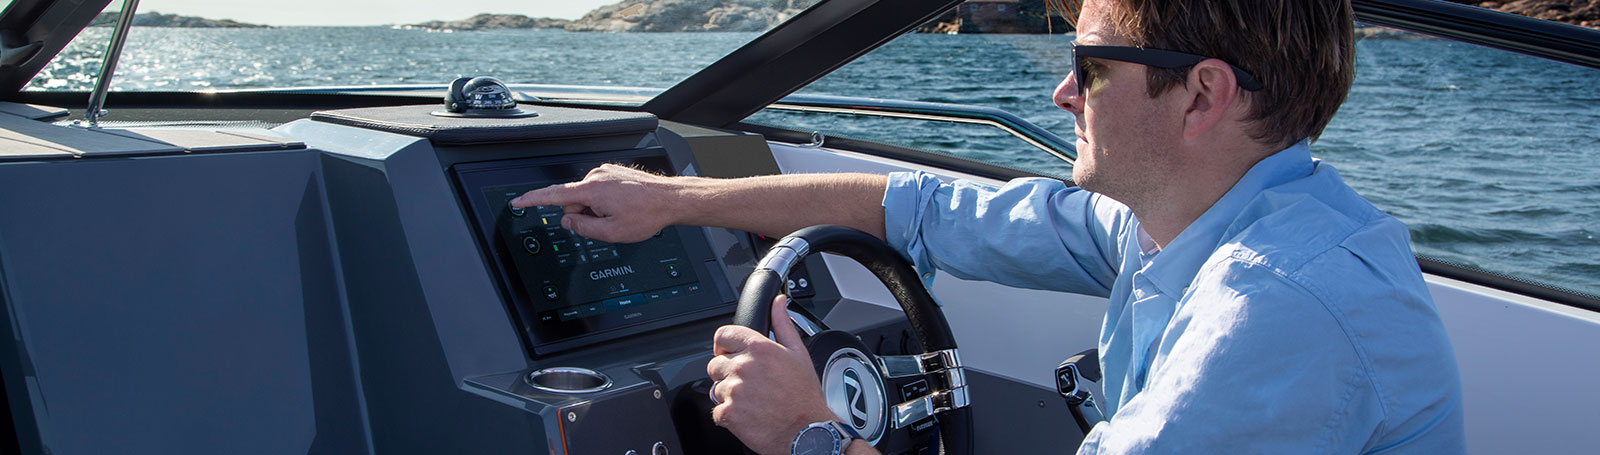 Connect to everything on your boat.